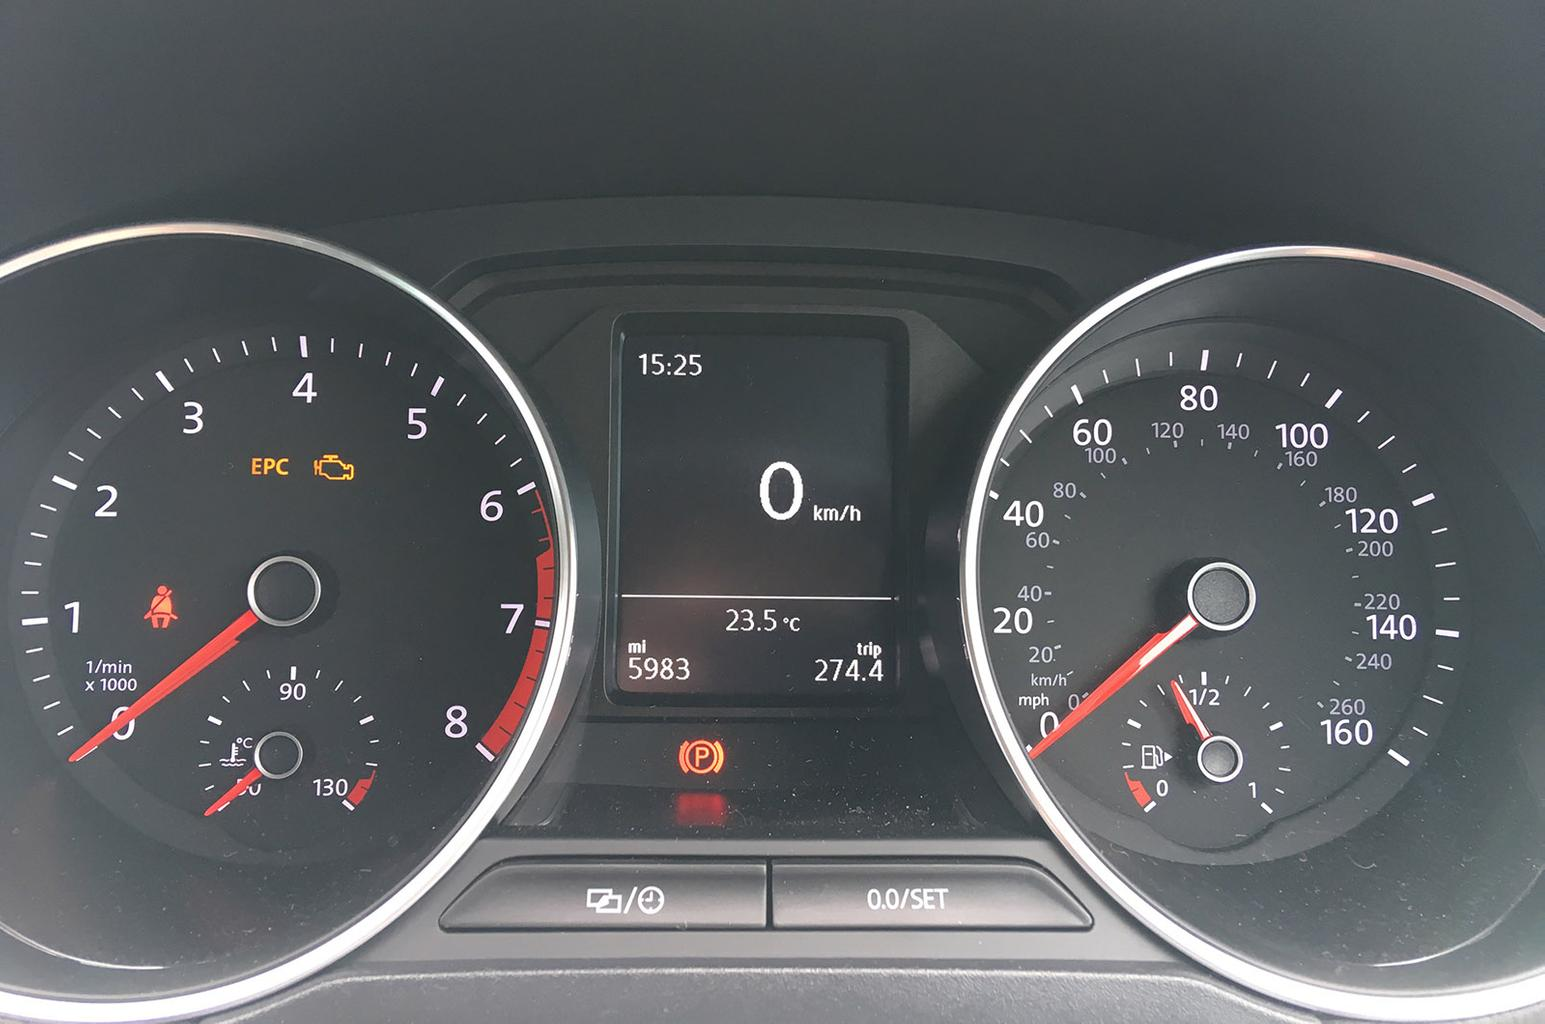 Used Volkswagen Polo (09-17) long-term review